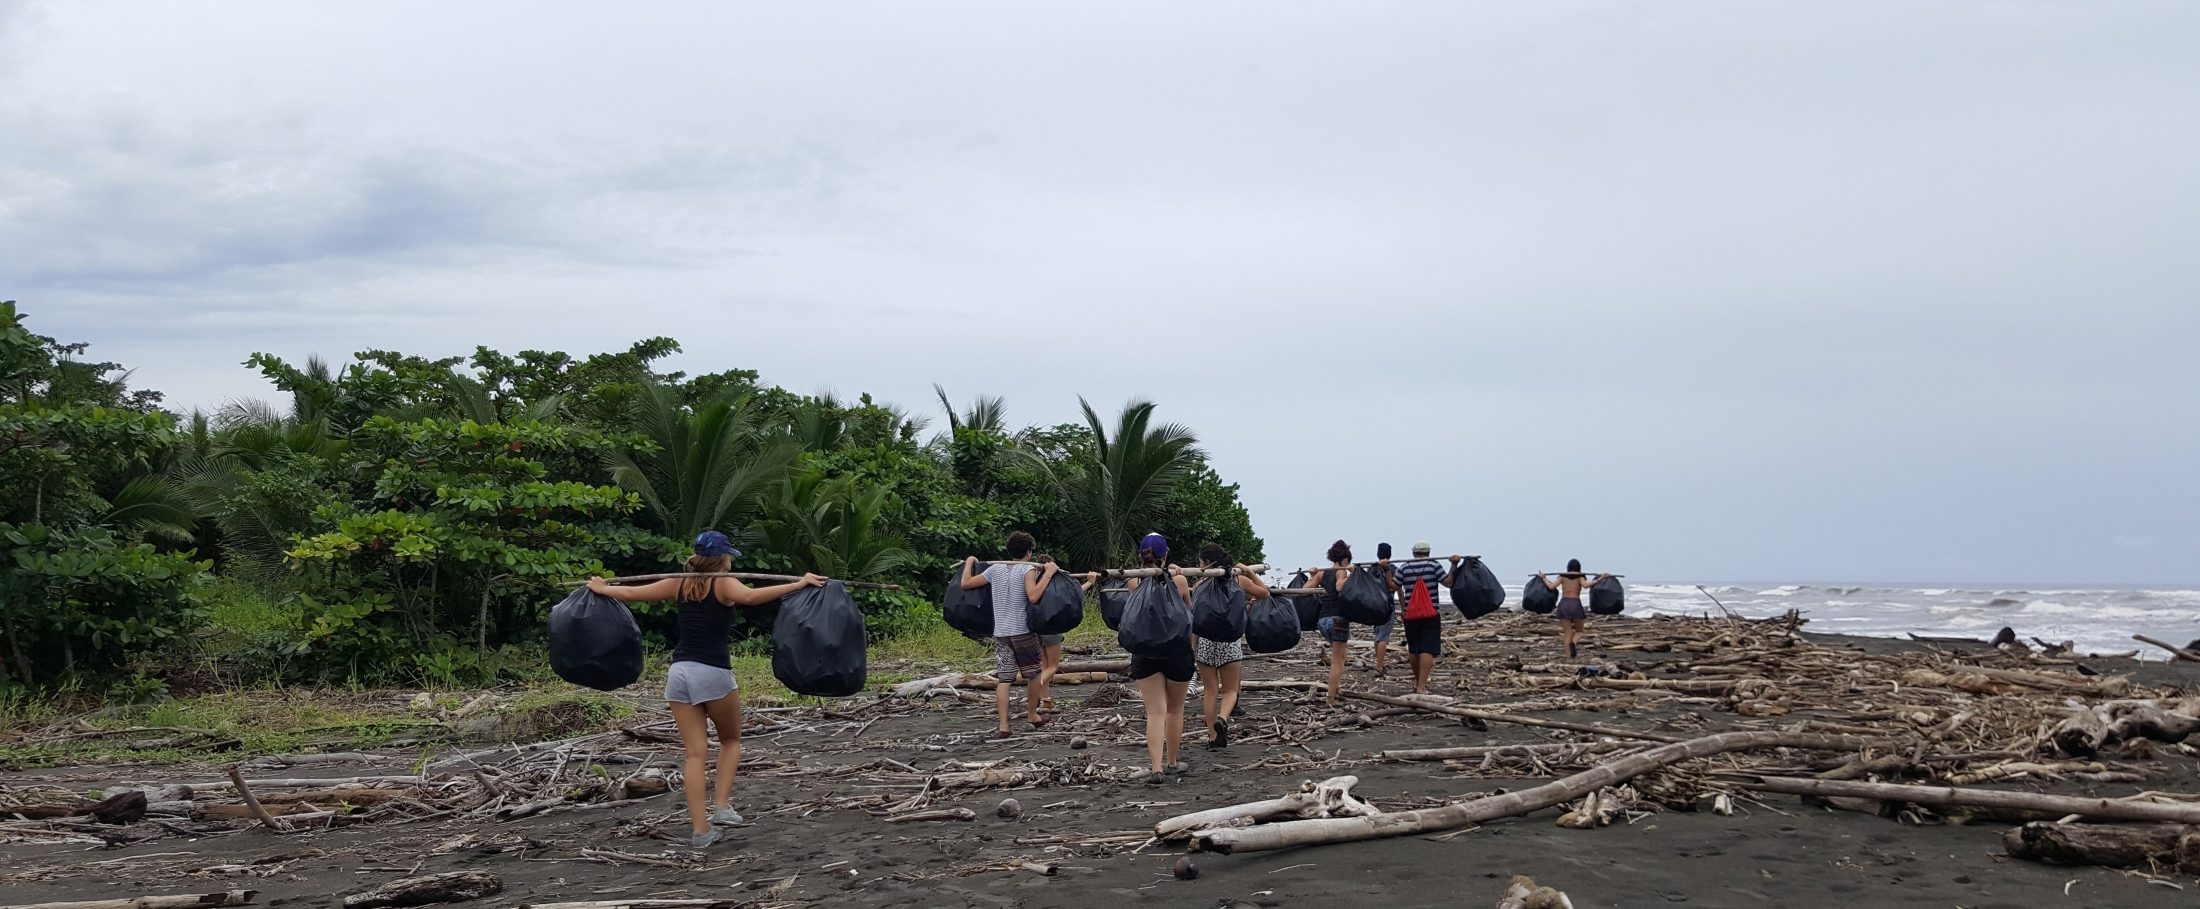 Volunteers Cleaning up Beaches at Costa Rica Sea Turtle Sanctuary